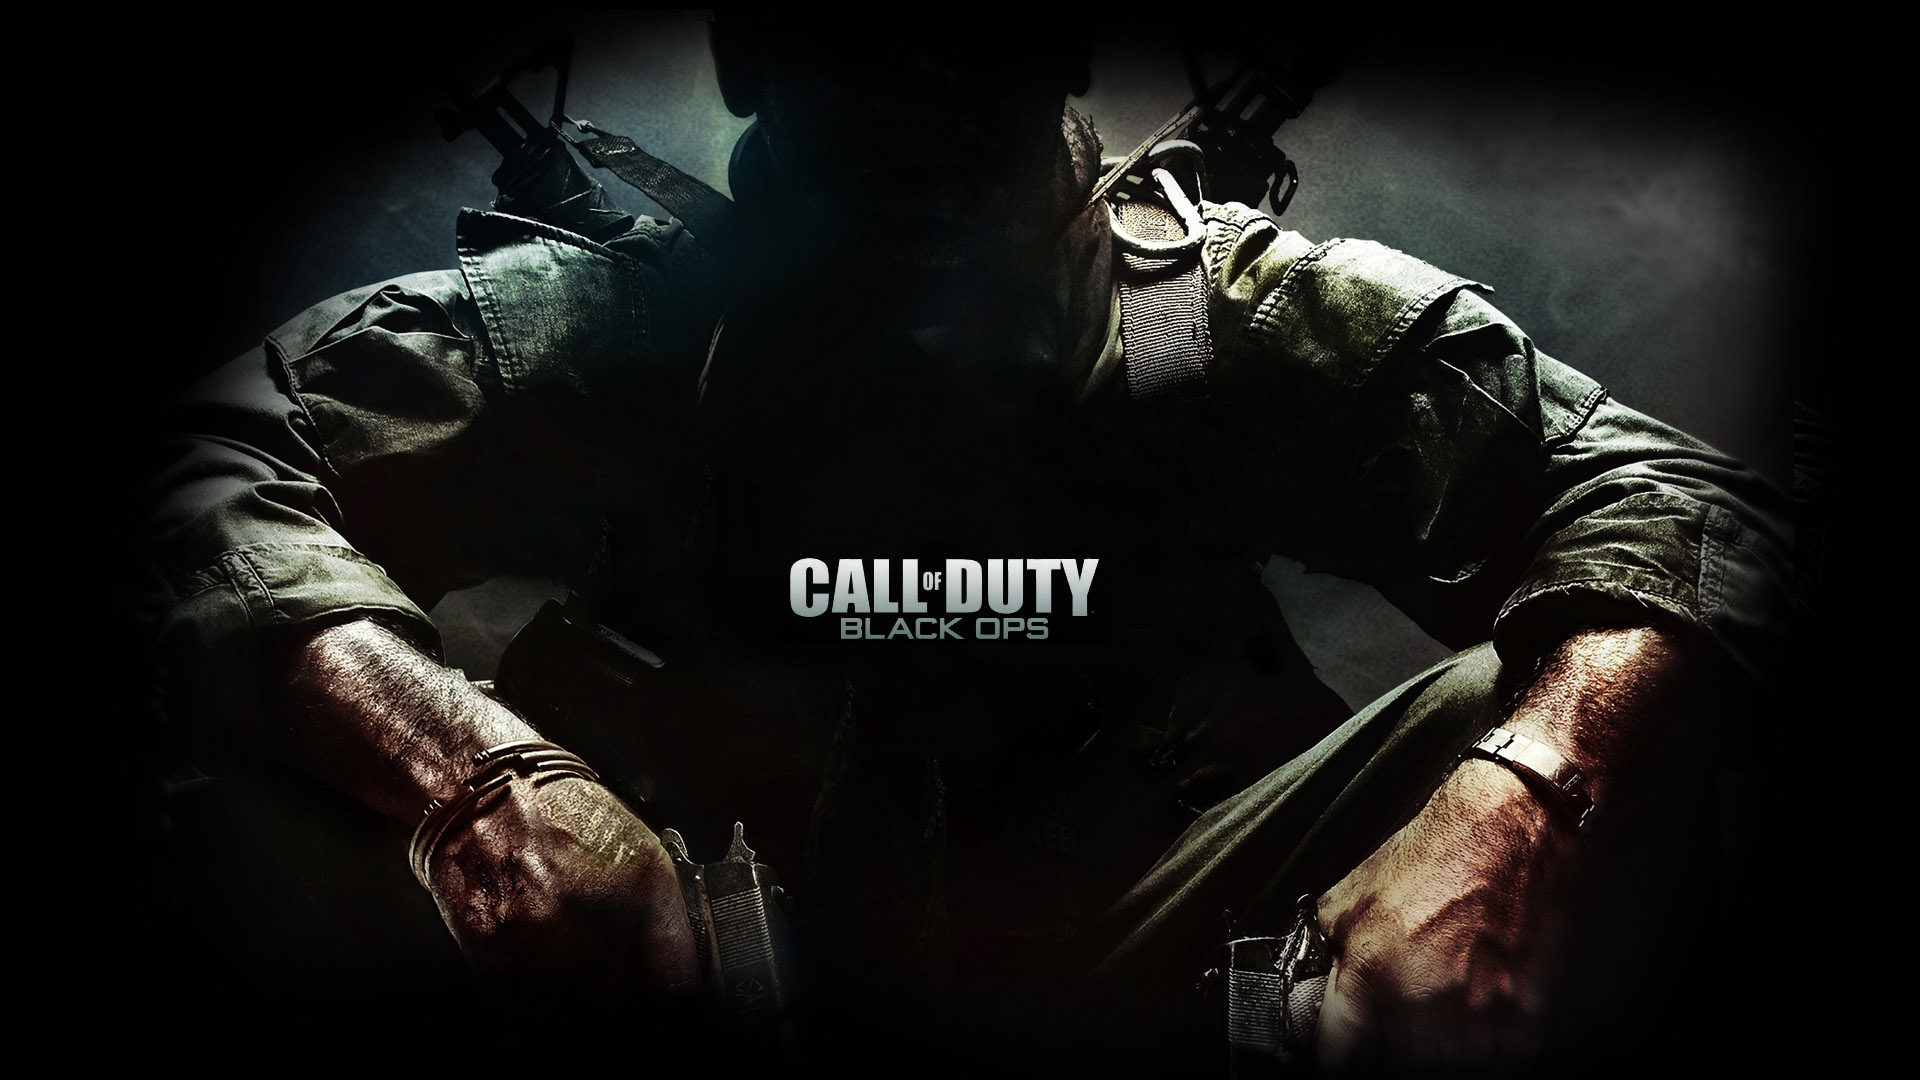 Call Of Duty Wallpaper Desktop #h40068995, 0.27 Mb